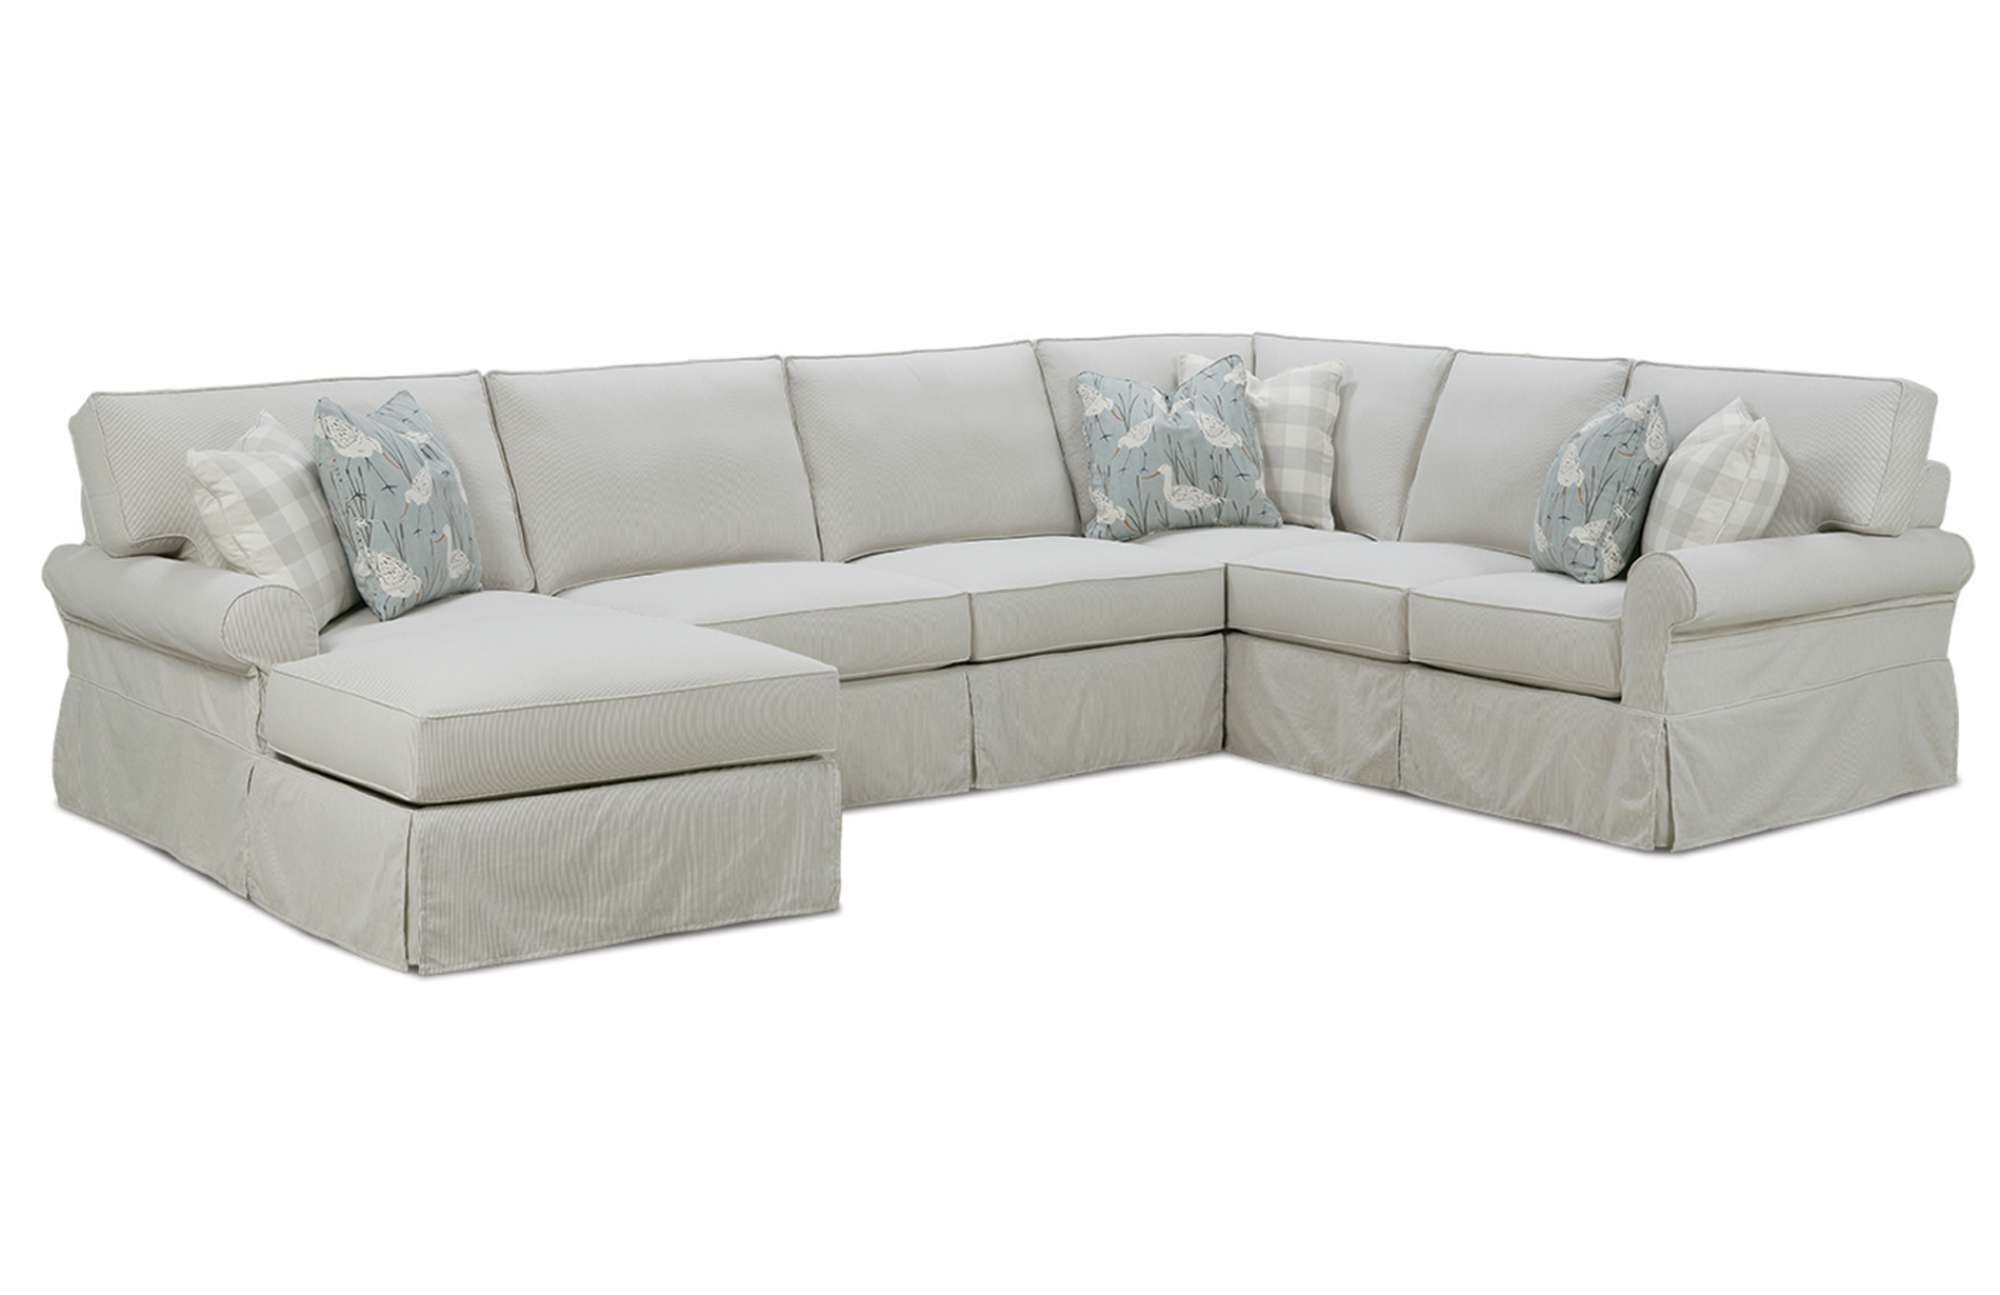 Easton Slipcover Sectionalrowe Furniture Throughout Favorite Slipcovered Sofas With Chaise (View 5 of 15)